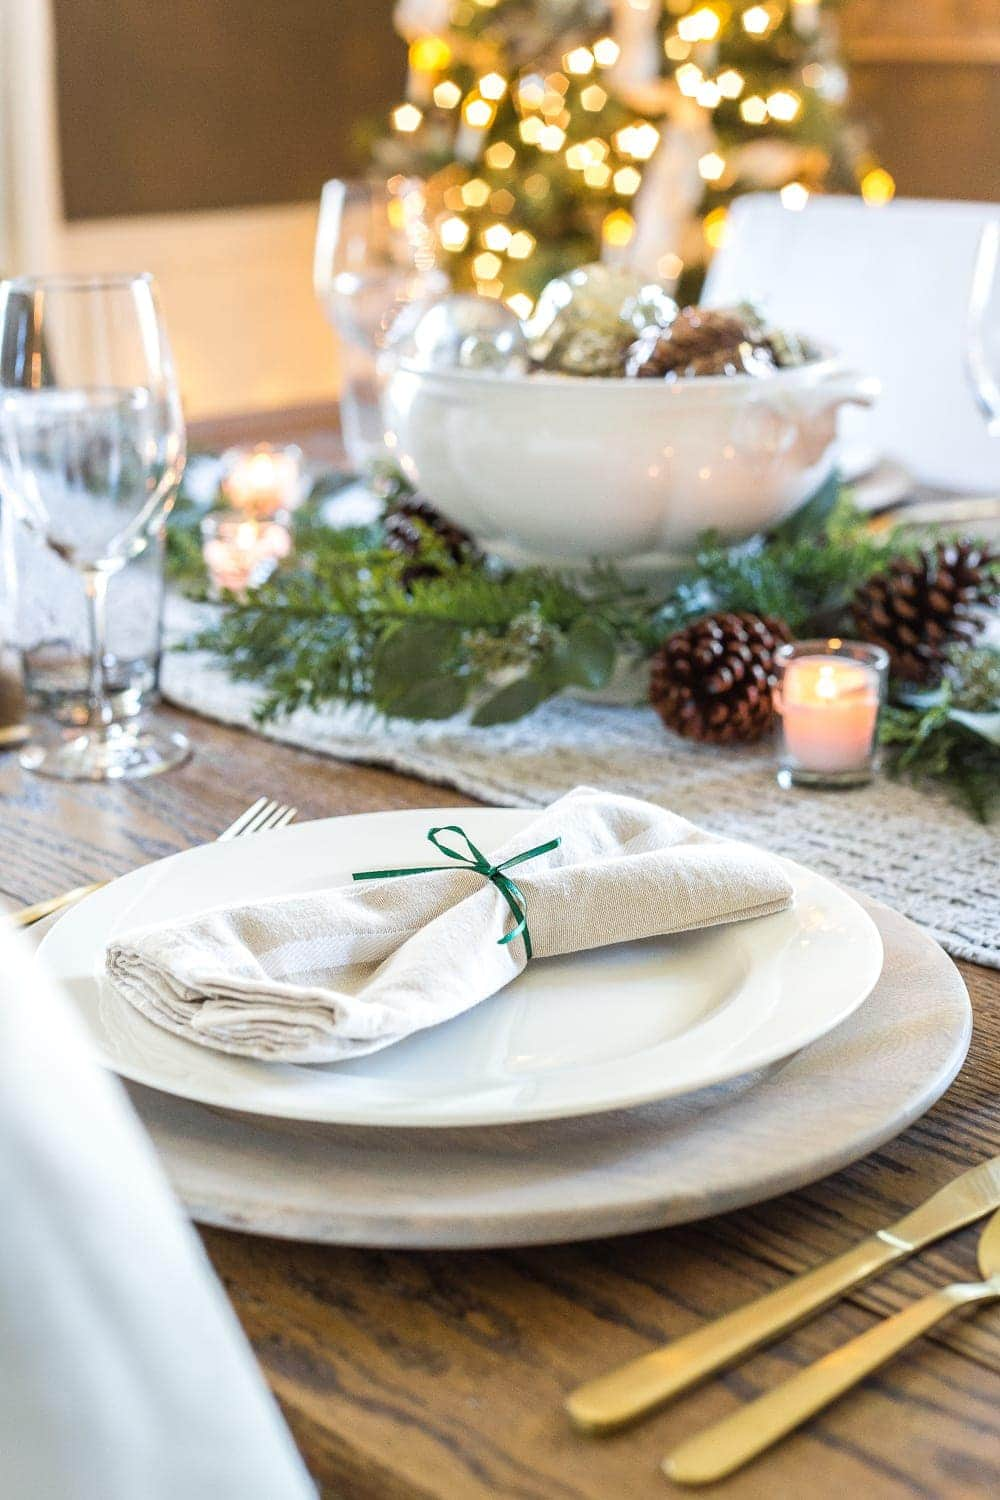 Thrifty Christmas decorating idea: tie a napkin with leftover wrapping ribbon for a napkin ring